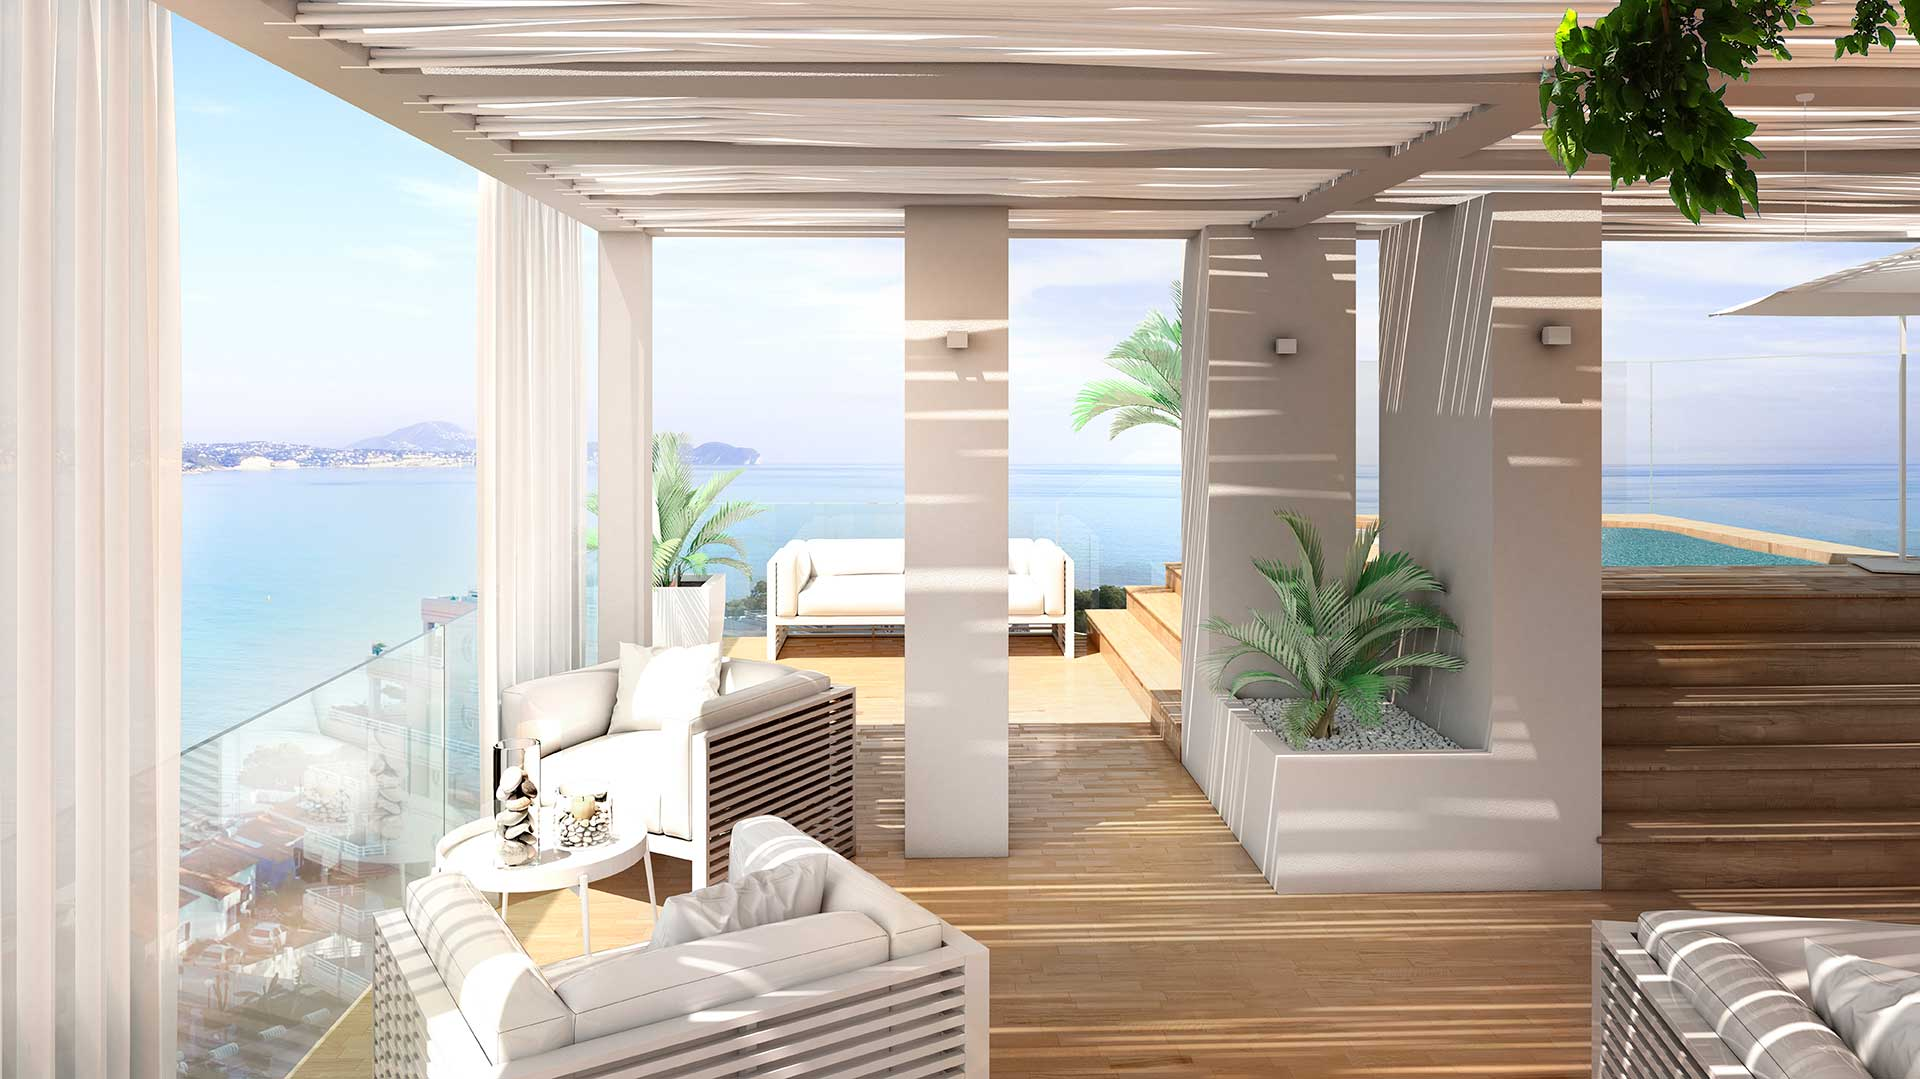 The Beach at your home